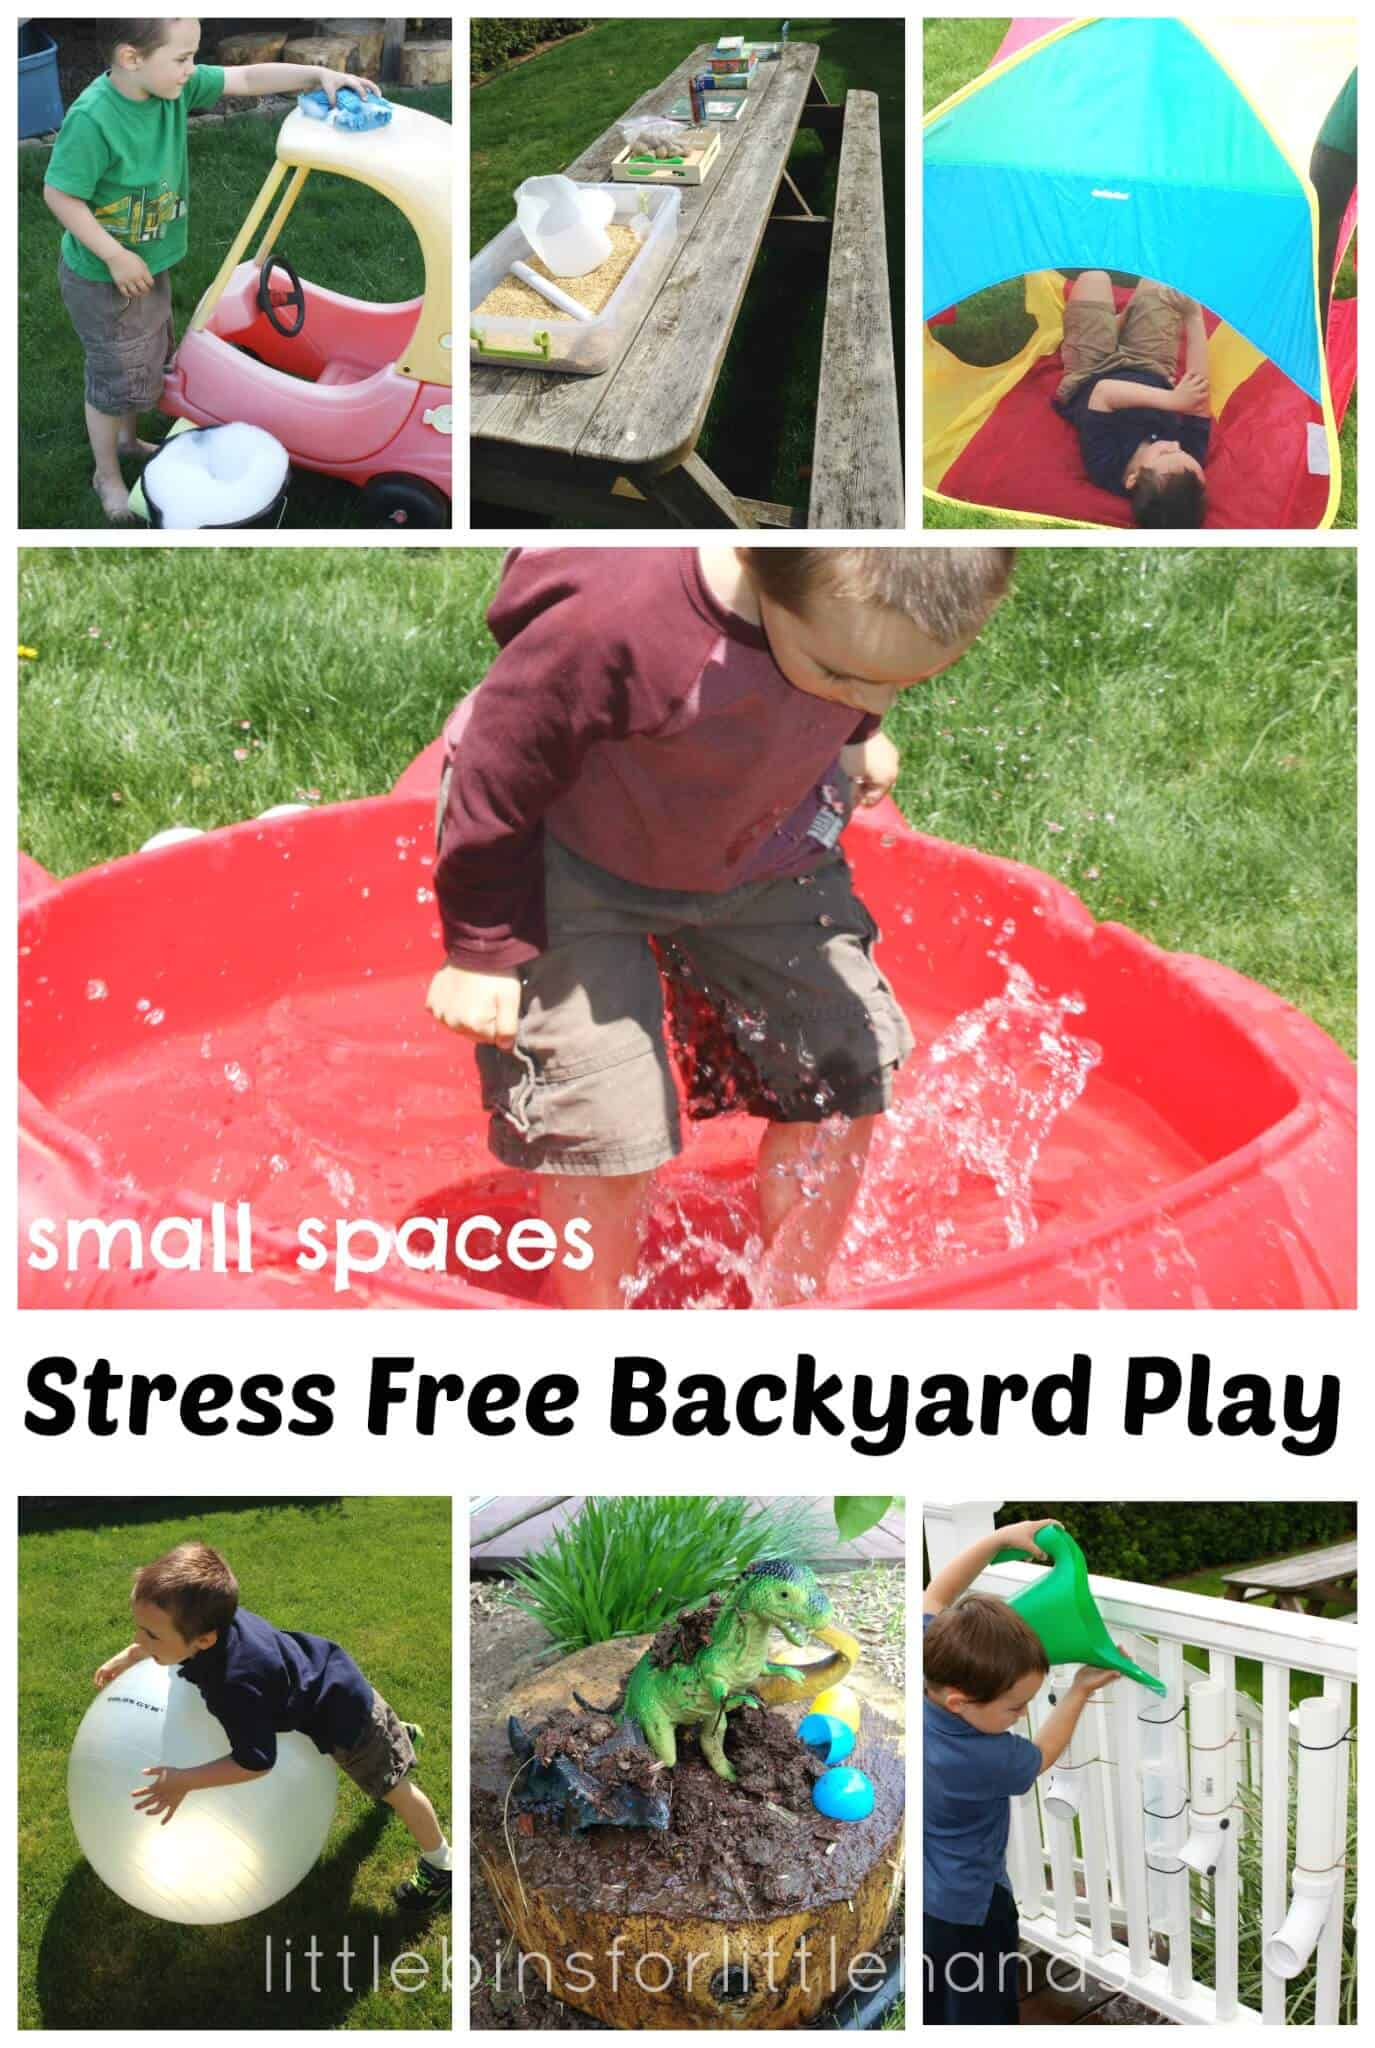 Water and ice activities summer camp at home with 12 weeks of easy - Backyard Play Ideas And Stress Free Summer Activities Small Spaces Outdoor Activities